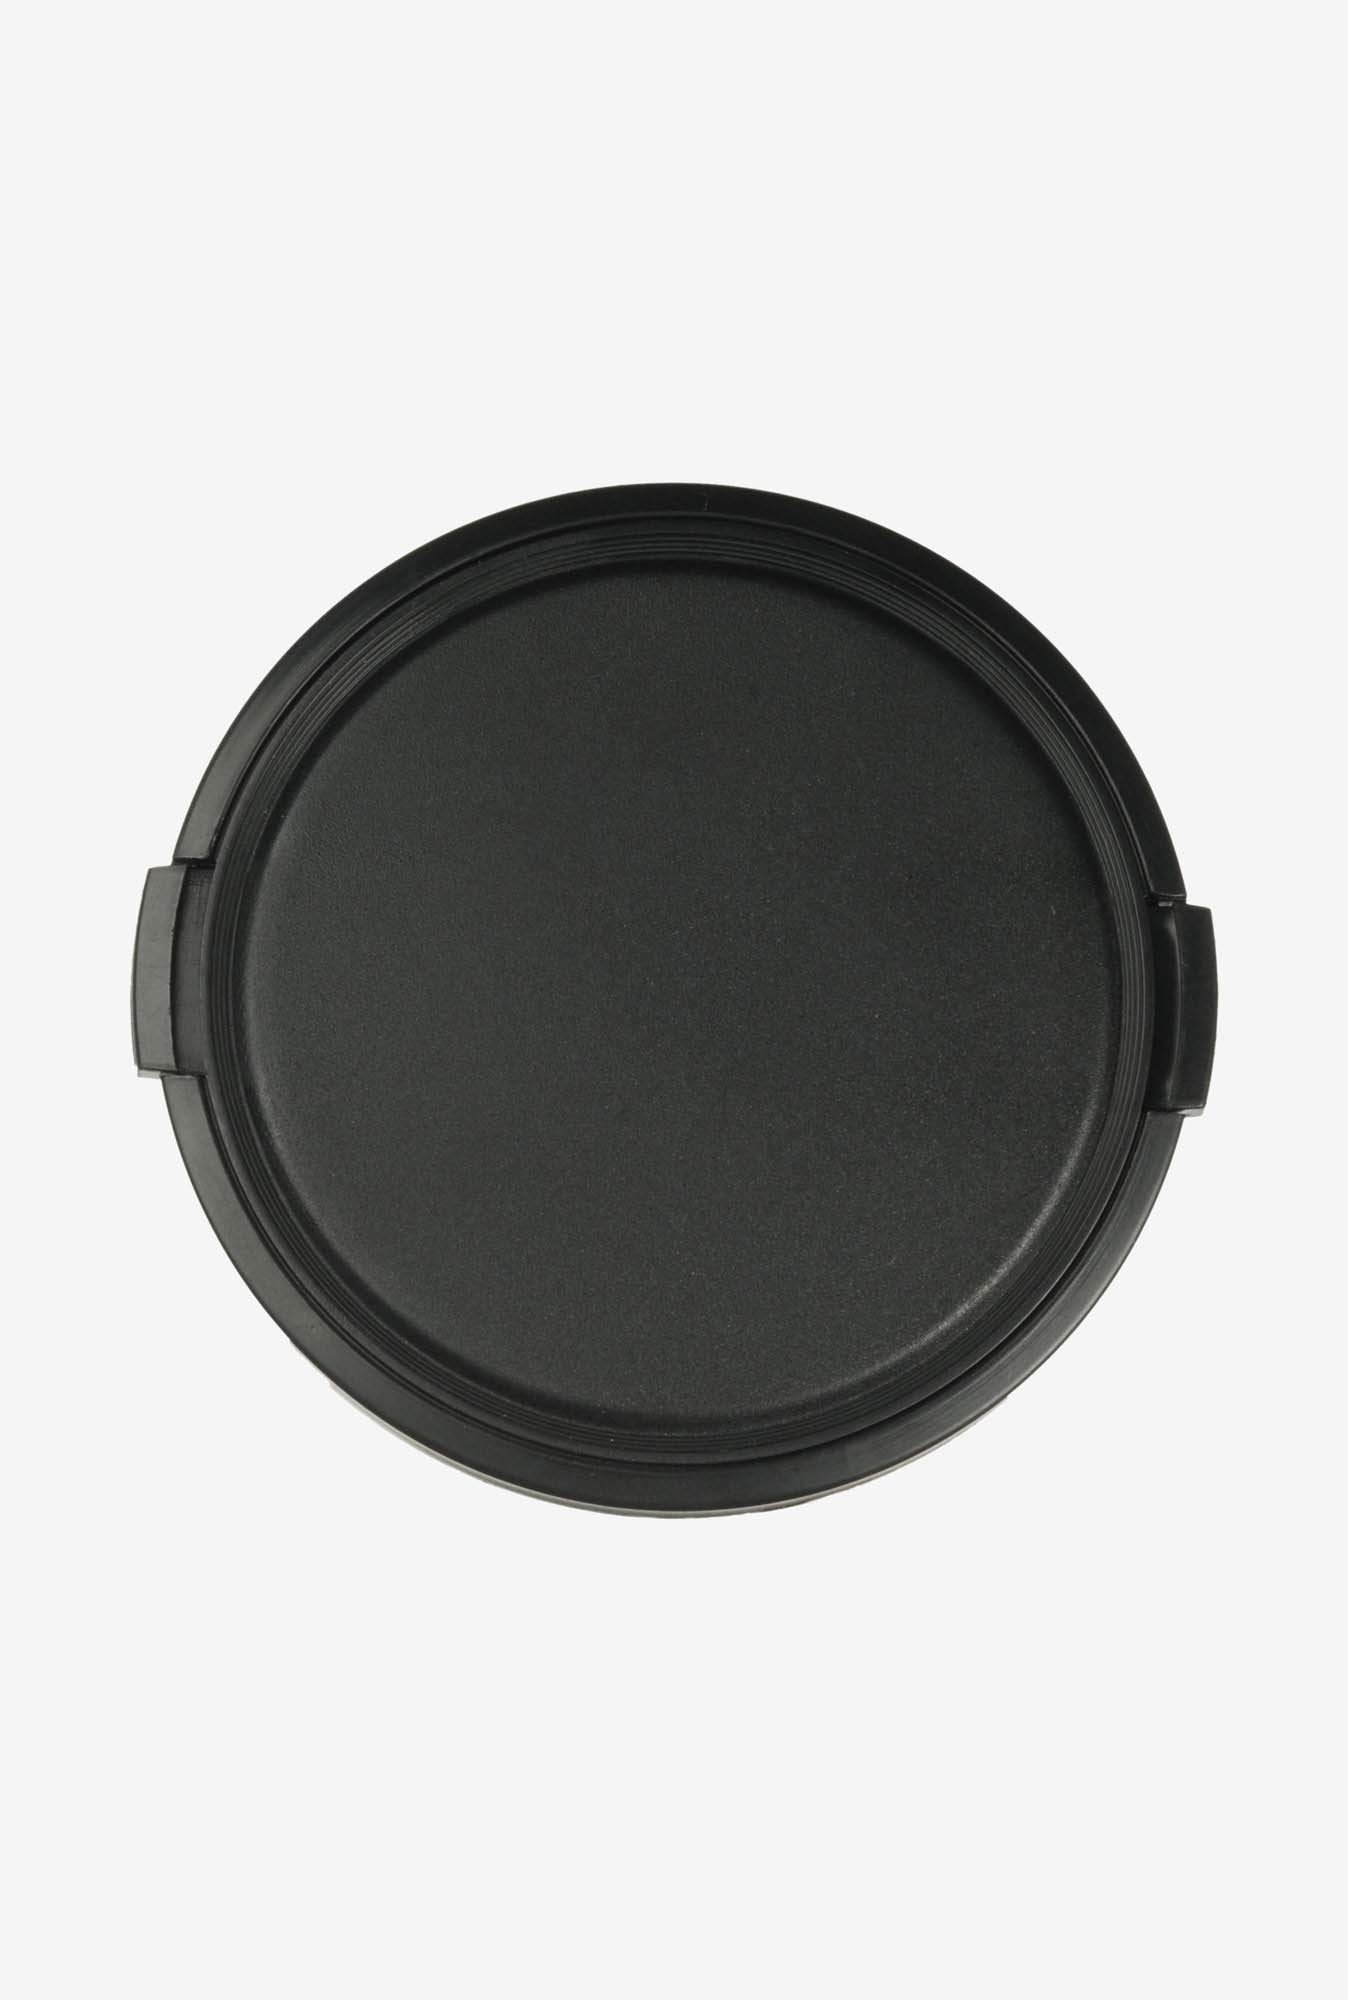 Sensei LCC62 62mm Clip-On Lens Cap (Black)